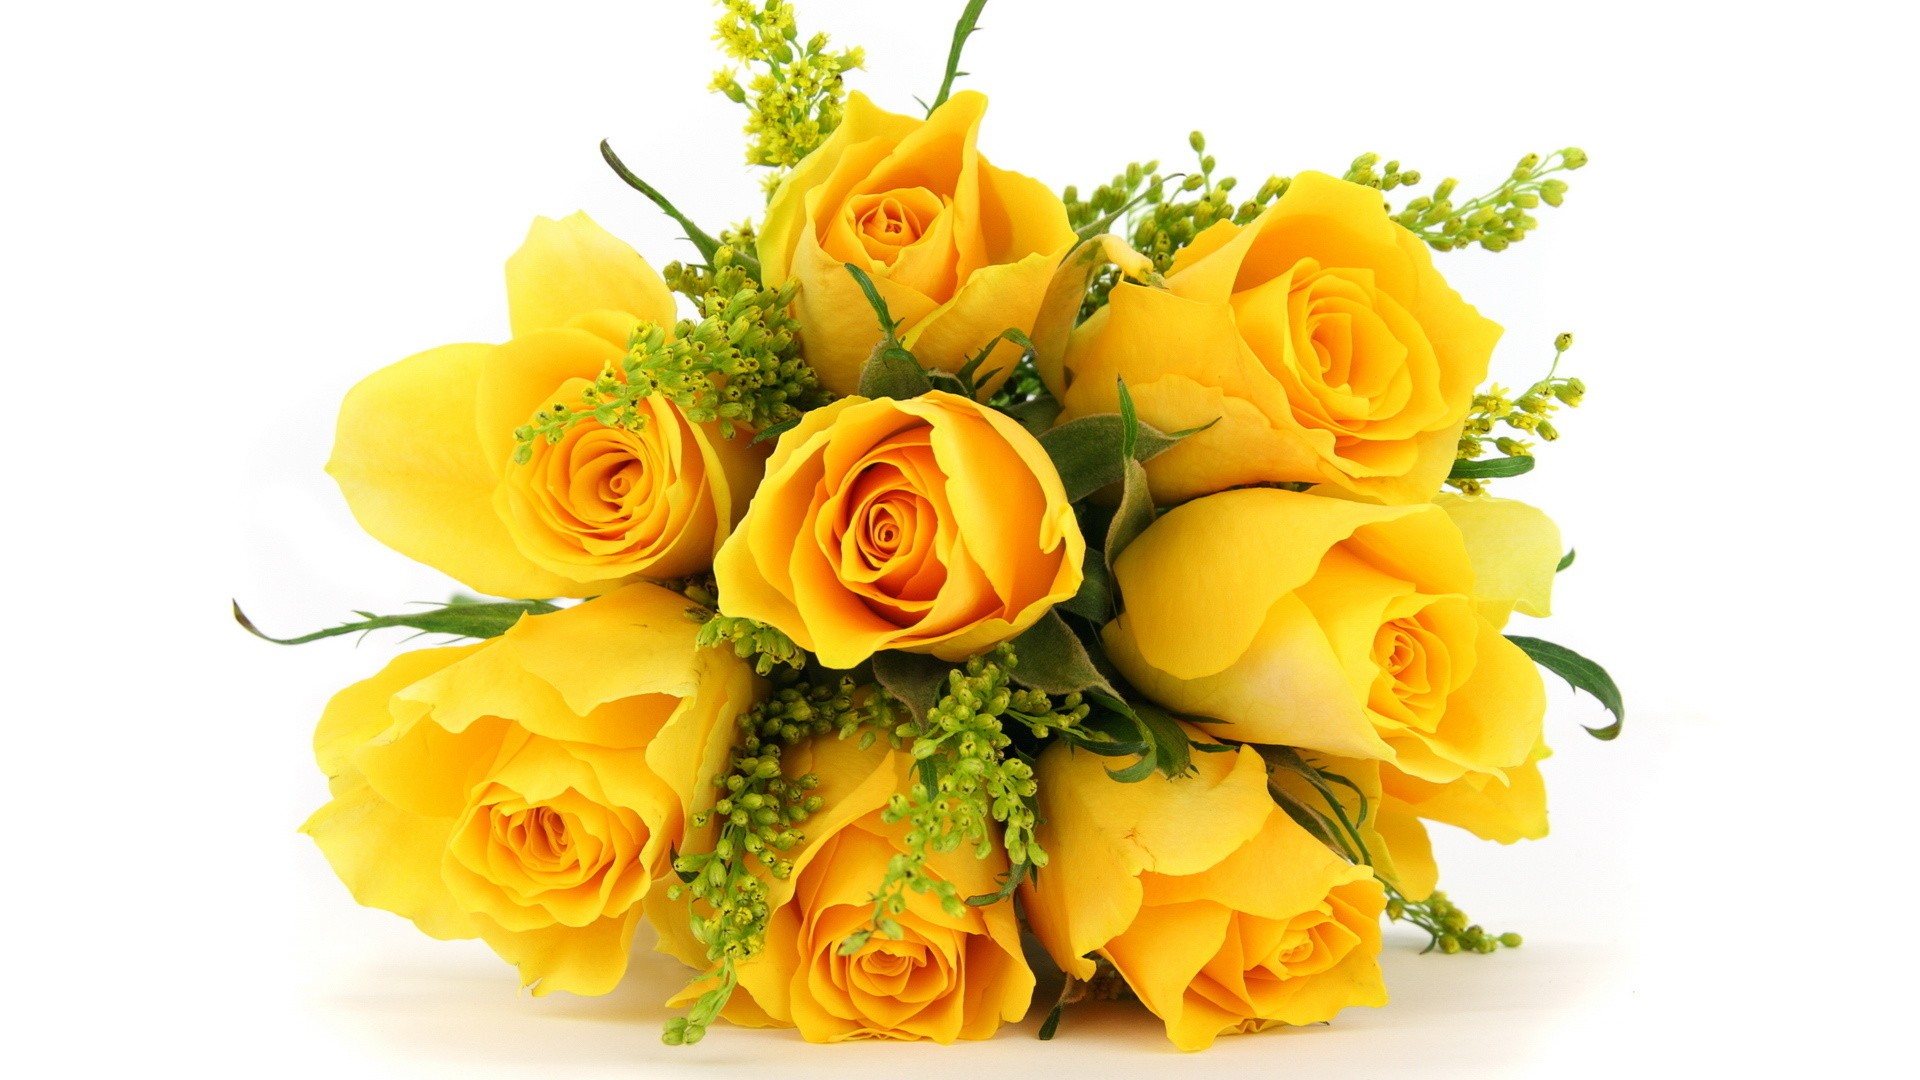 Yellow Rose clipart flower rose wallpaper Flowers  Birthday Flowers Quality